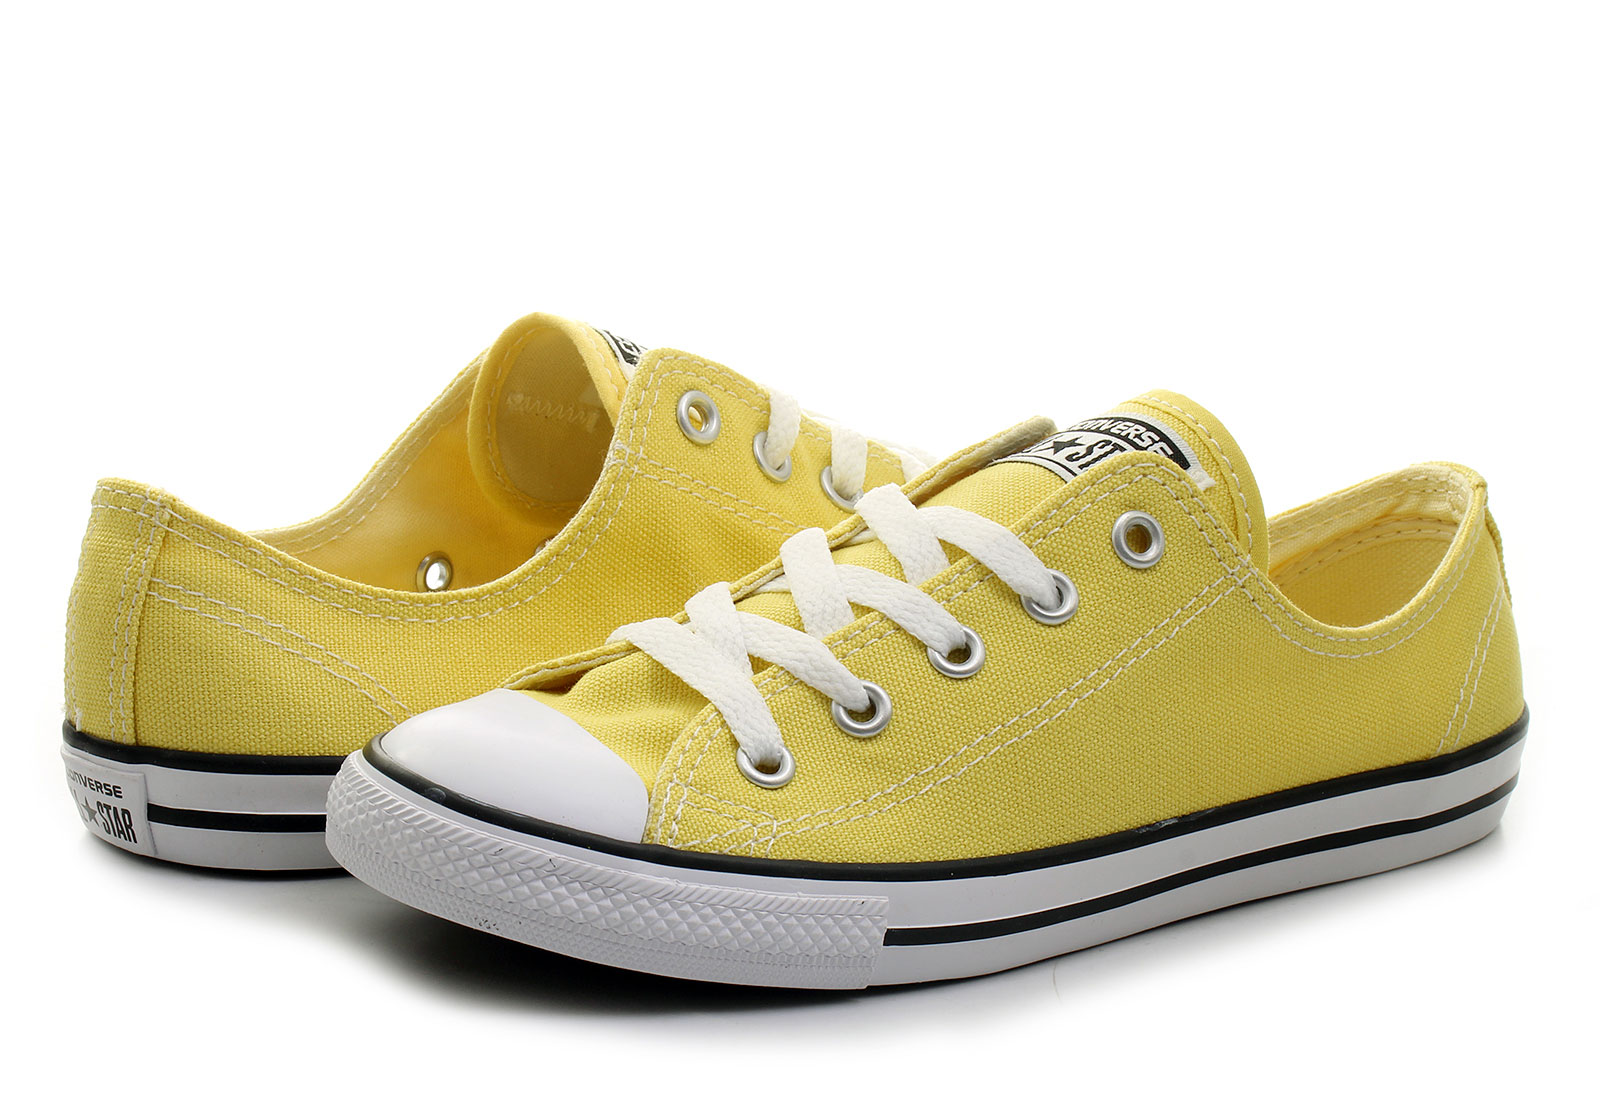 Converse Sneakers - Chuck Taylor All Star Dainty Ox - 551513C ... 964d32ced8